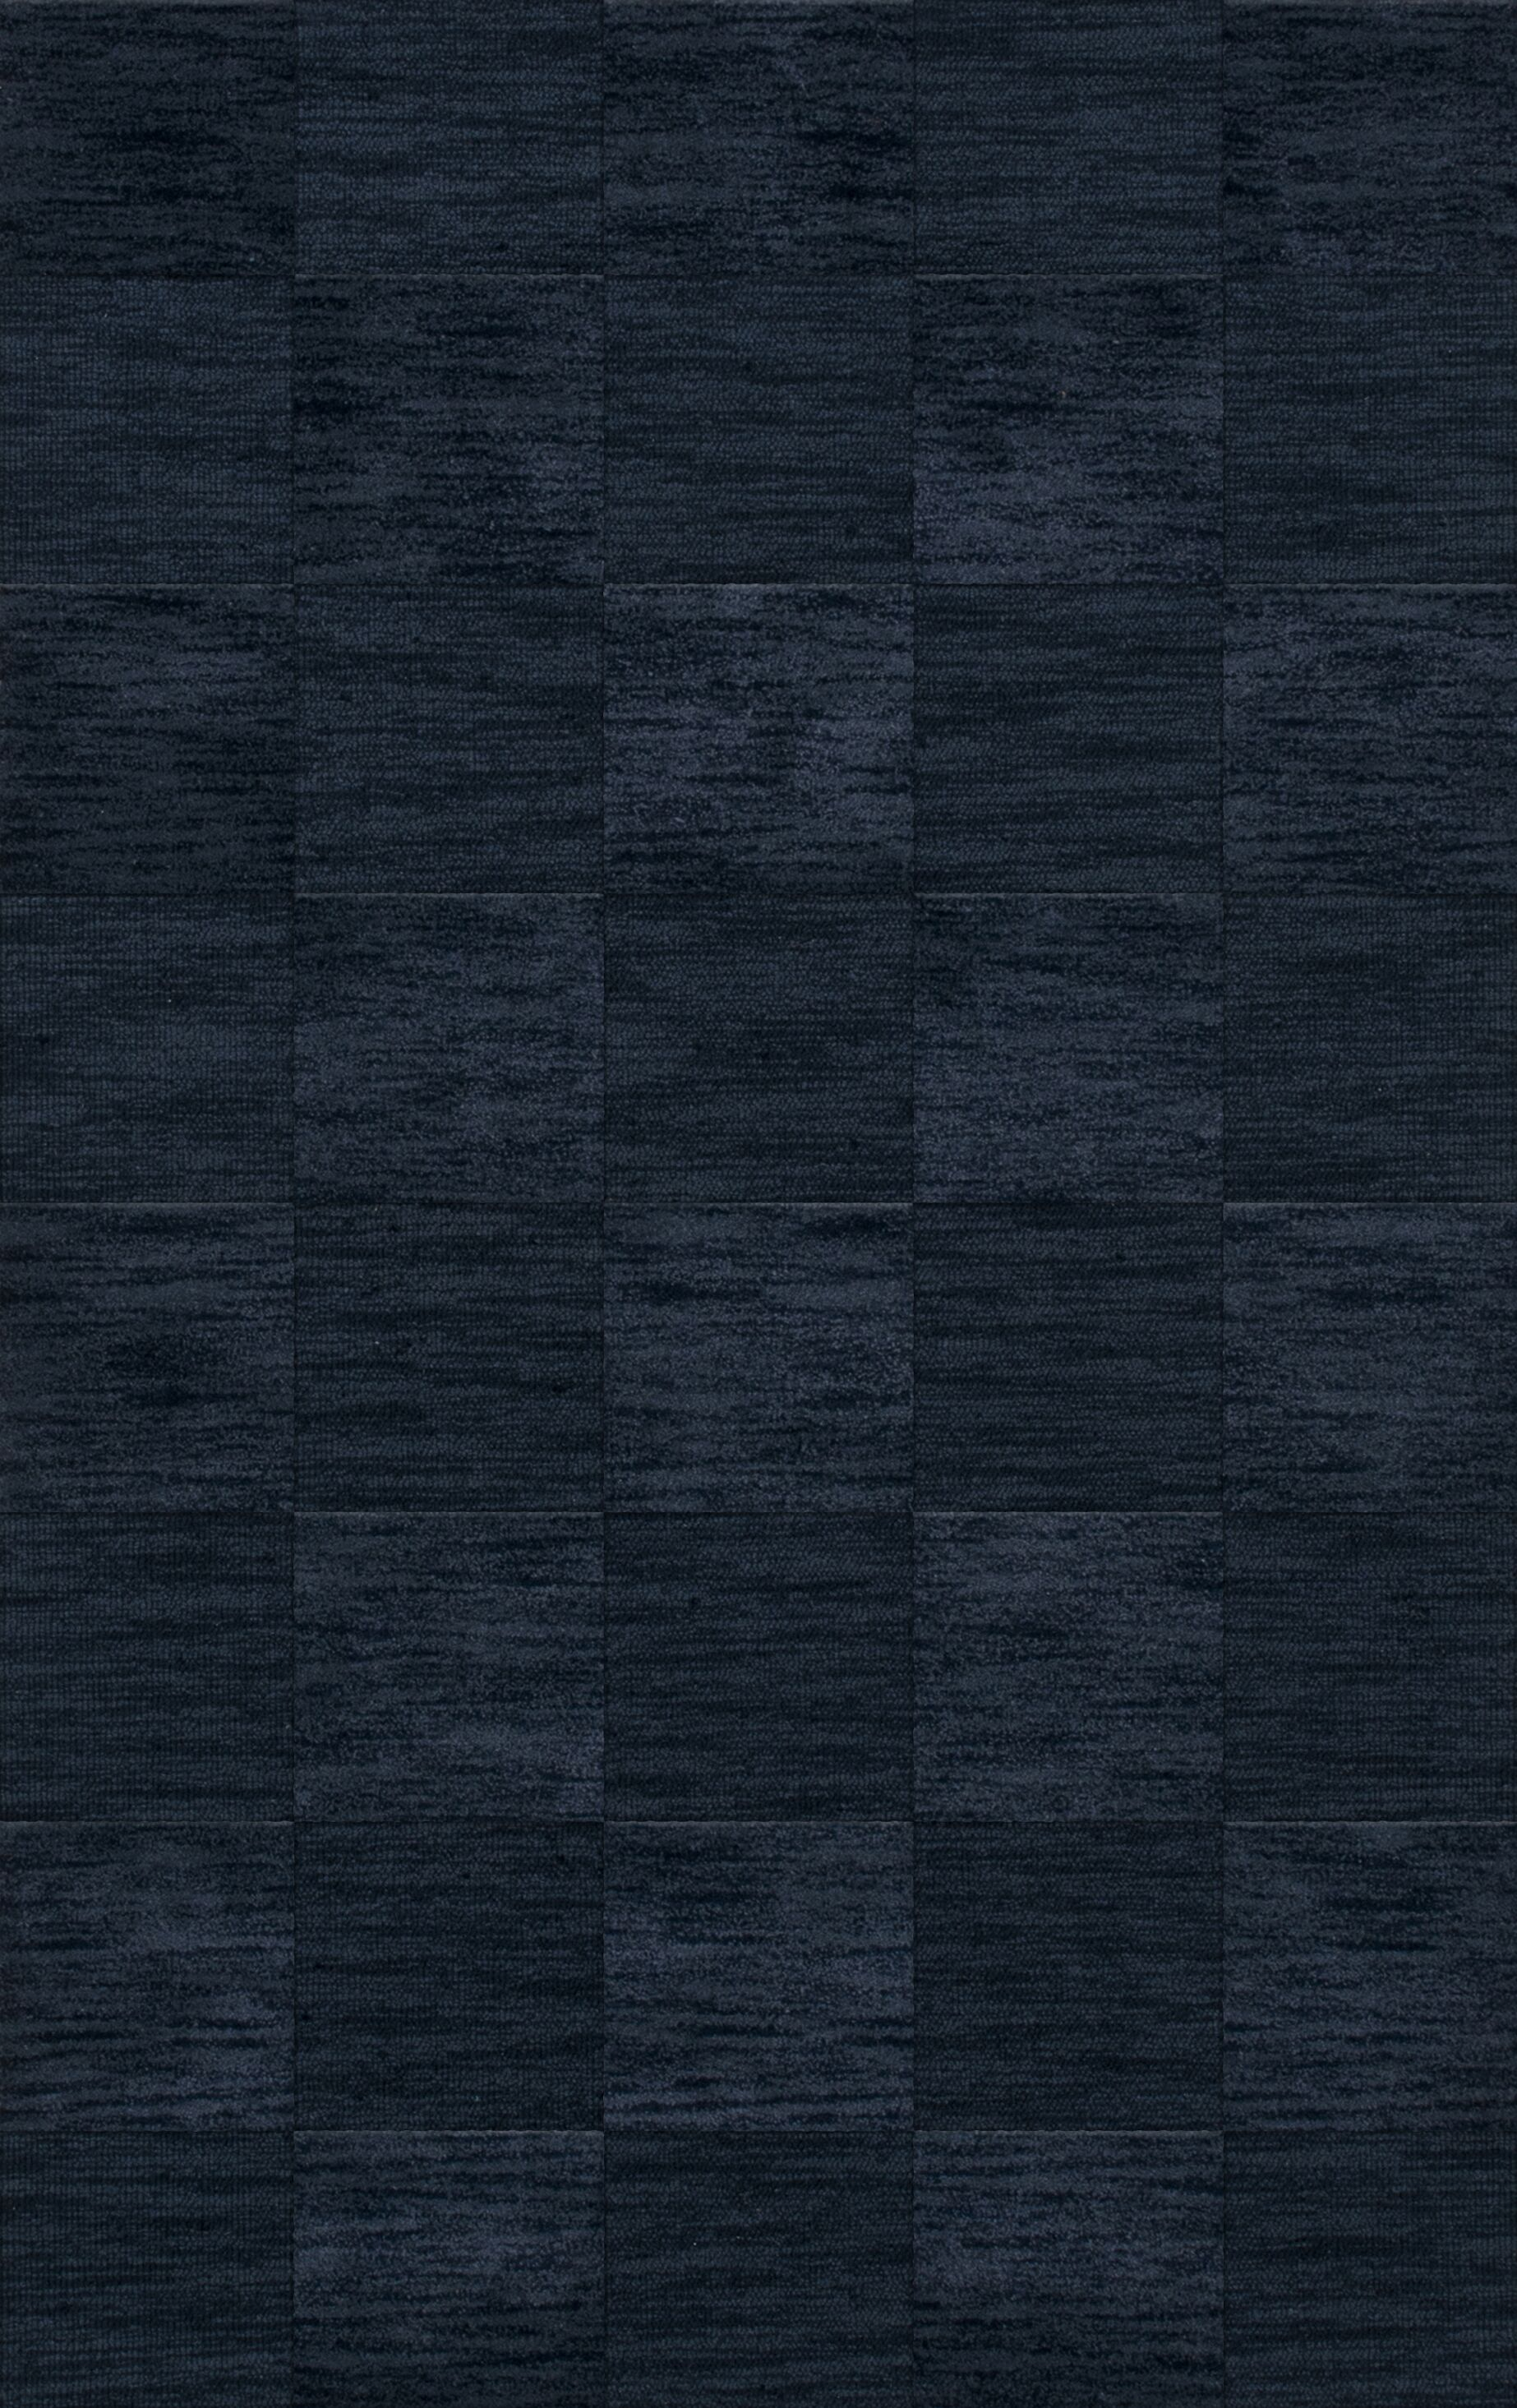 Dover Tufted Wool Navy Area Rug Rug Size: Rectangle 10' x 14'